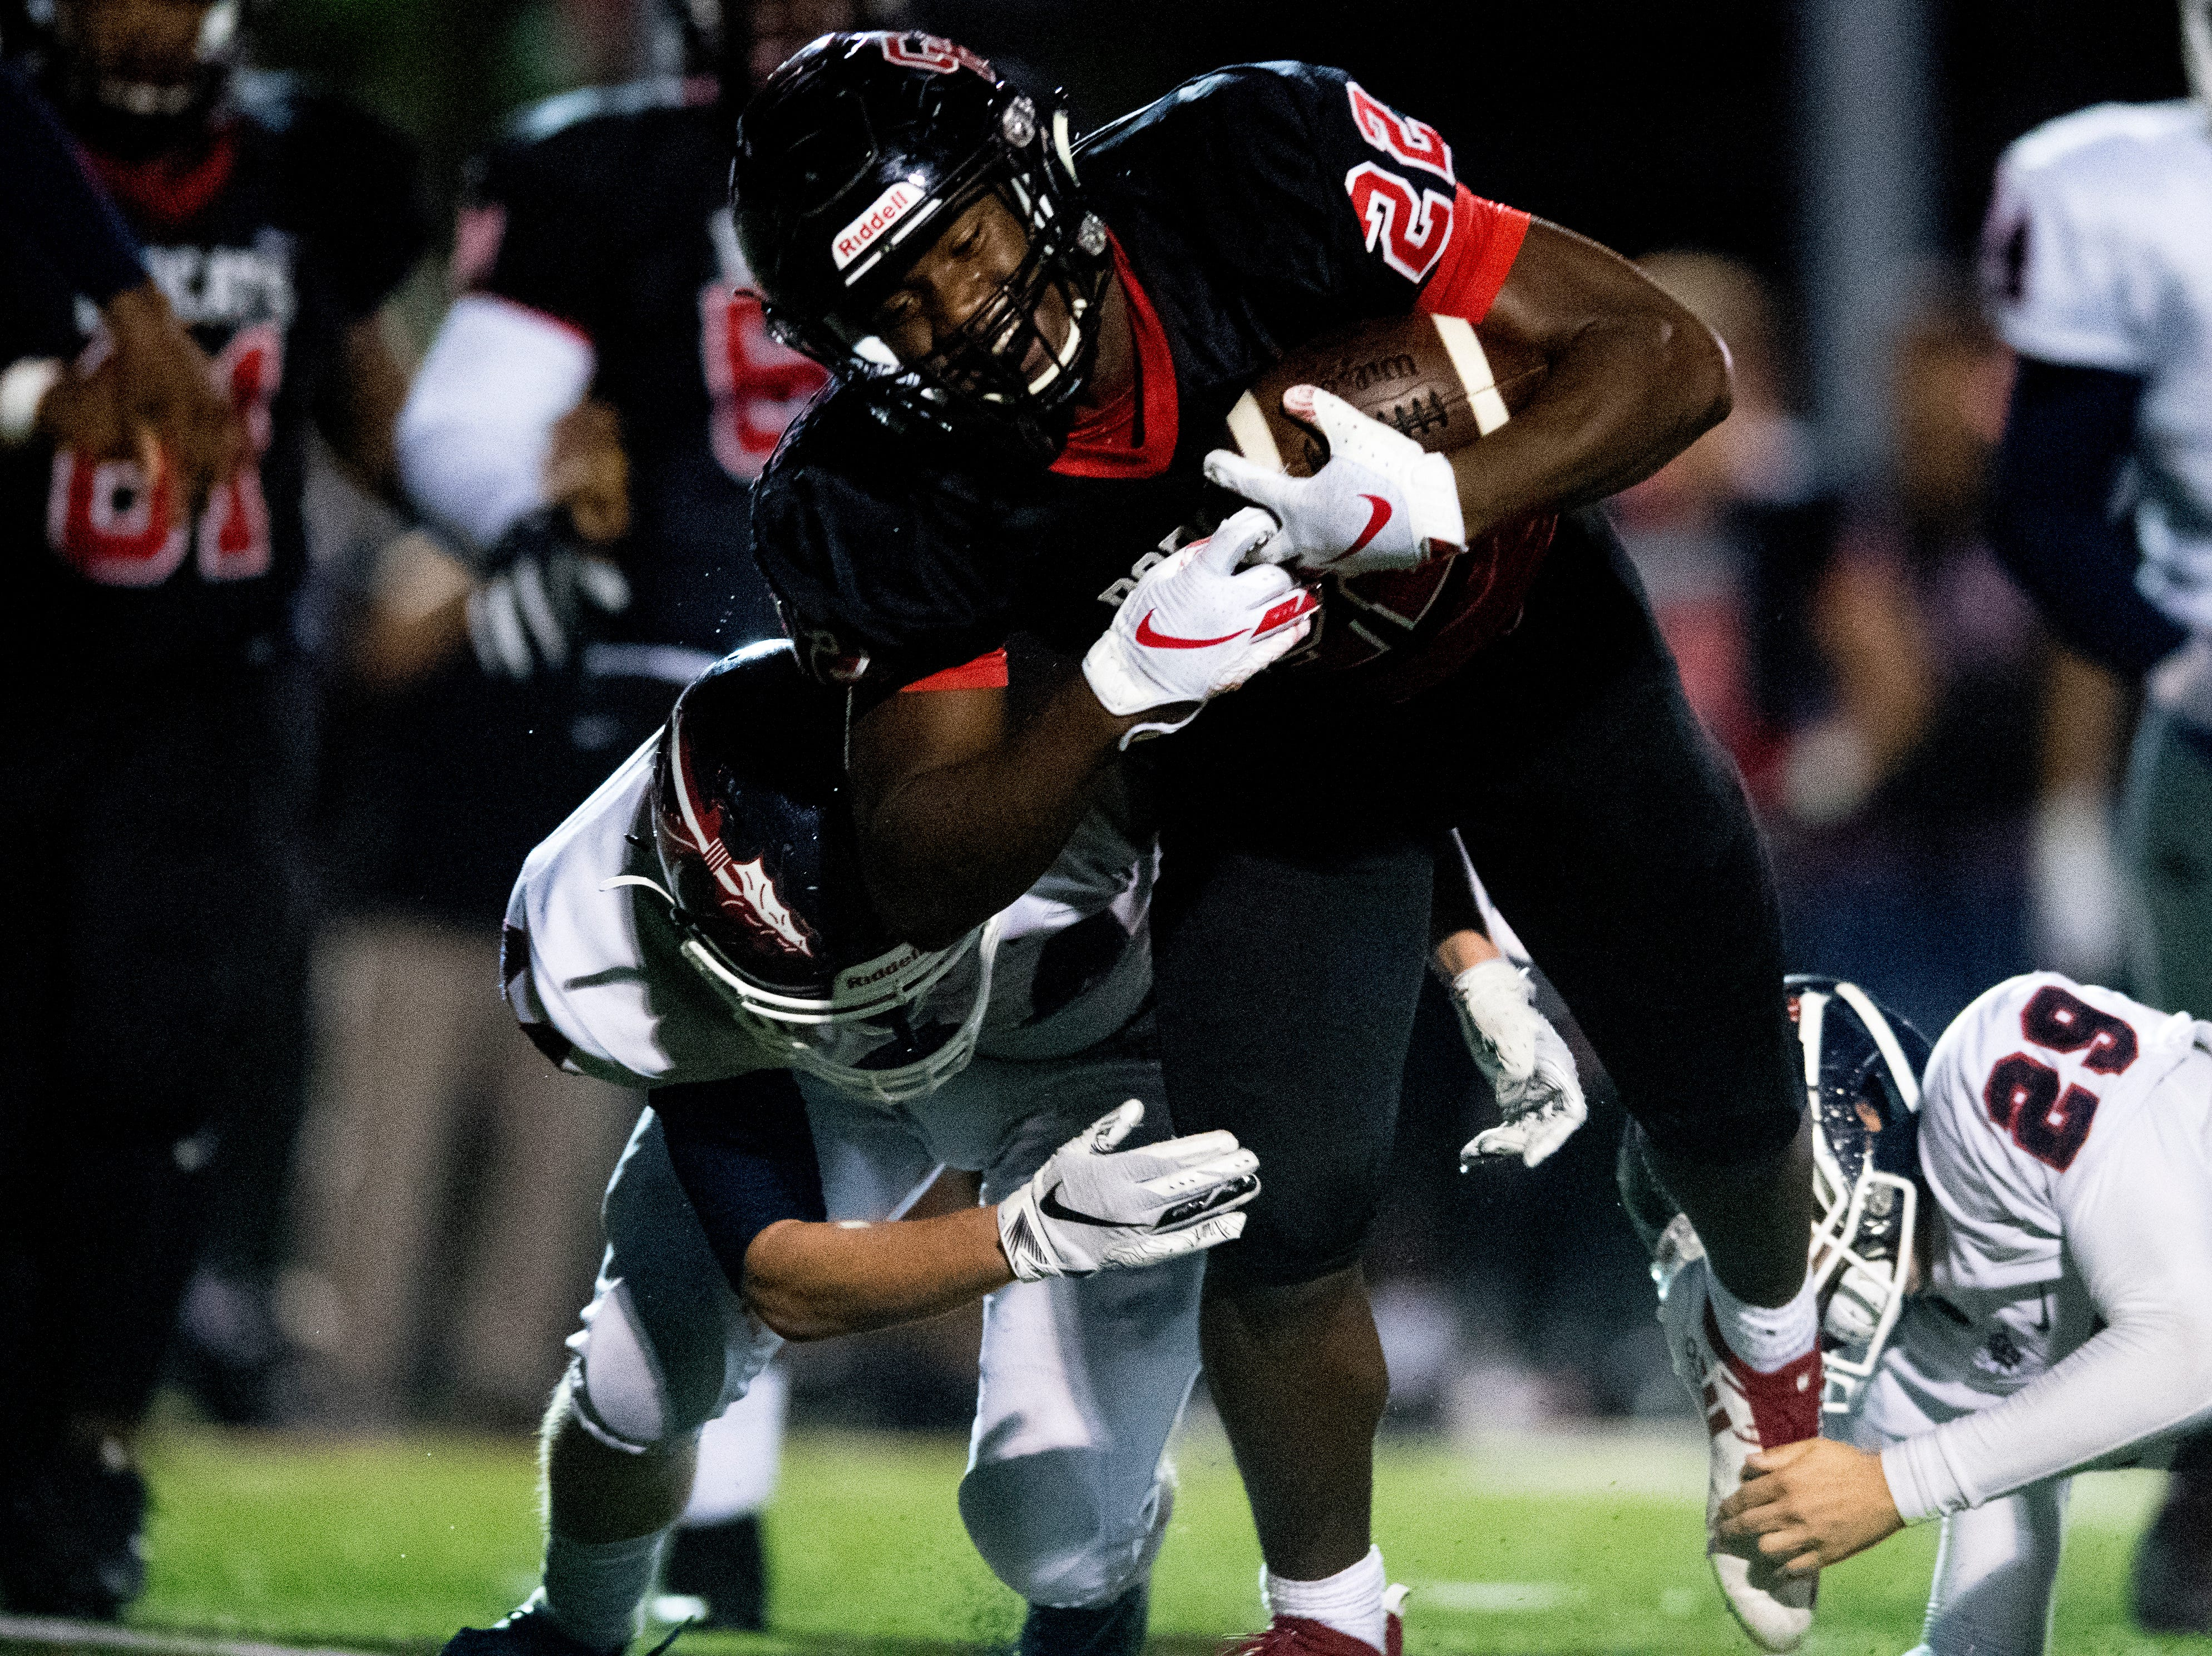 Central's Devone Moss (22) is taken down by South-Doyle's Farrell Scott (44) and South-Doyle's Isaac Hamilton (29) during a football game between Central and South-Doyle at Central High School in Knoxville, Tennessee on Friday, October 19, 2018.